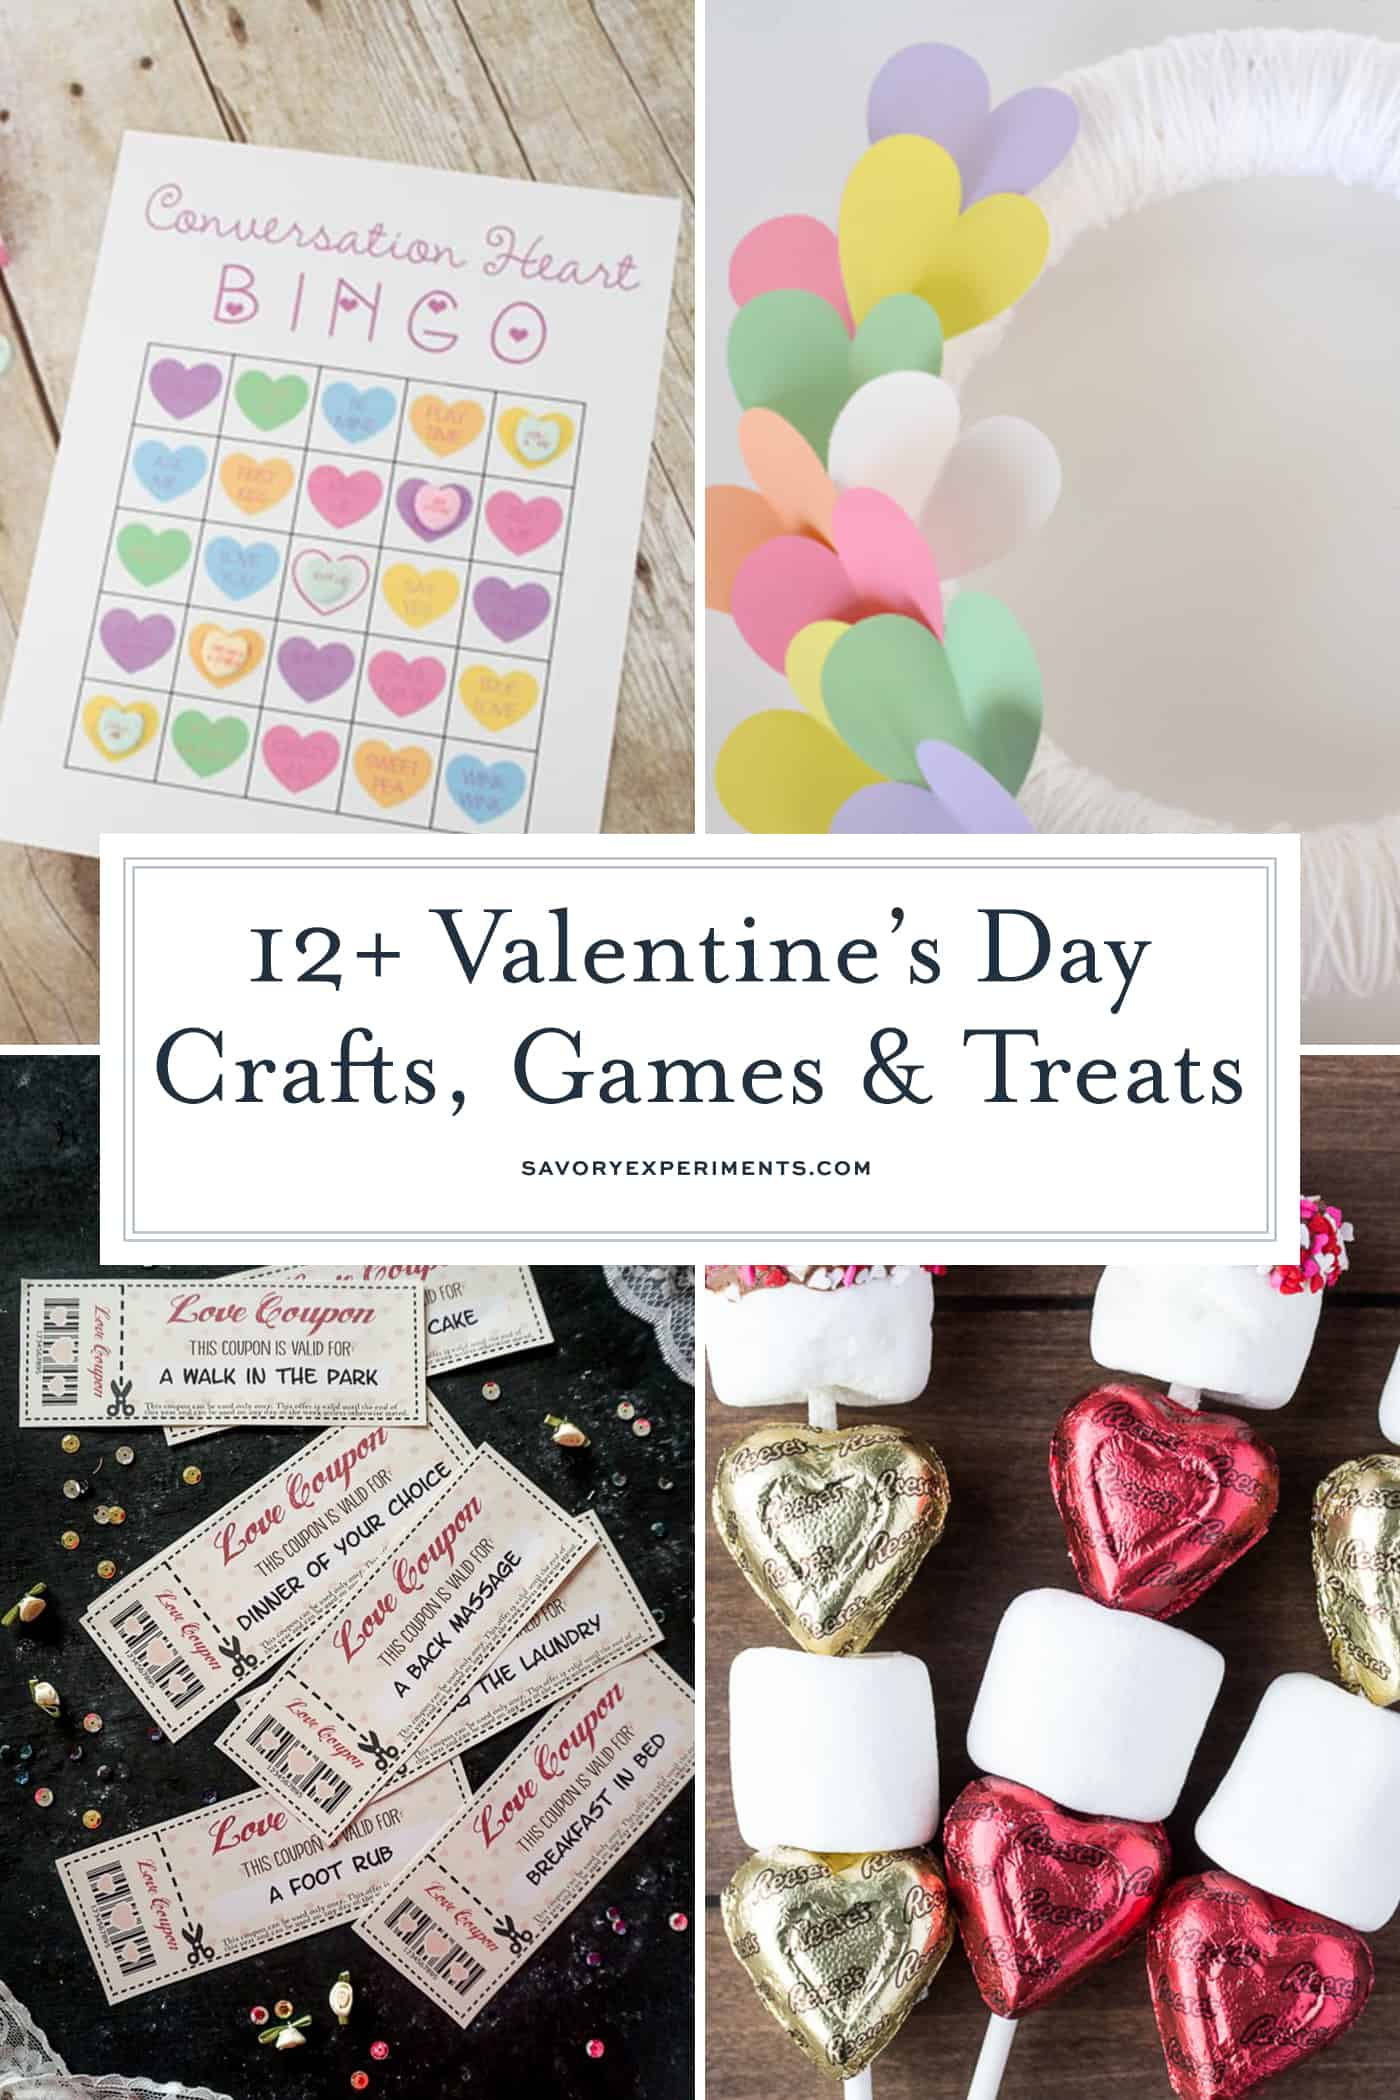 These easy Valentine's Day Crafts, Games and Treats are so fun and festive! These cute easy valentine crafts are perfect for the kids! #savoryexperiments #valentinesdaycrafts #valentinesdaygames #valentinesdaytreats